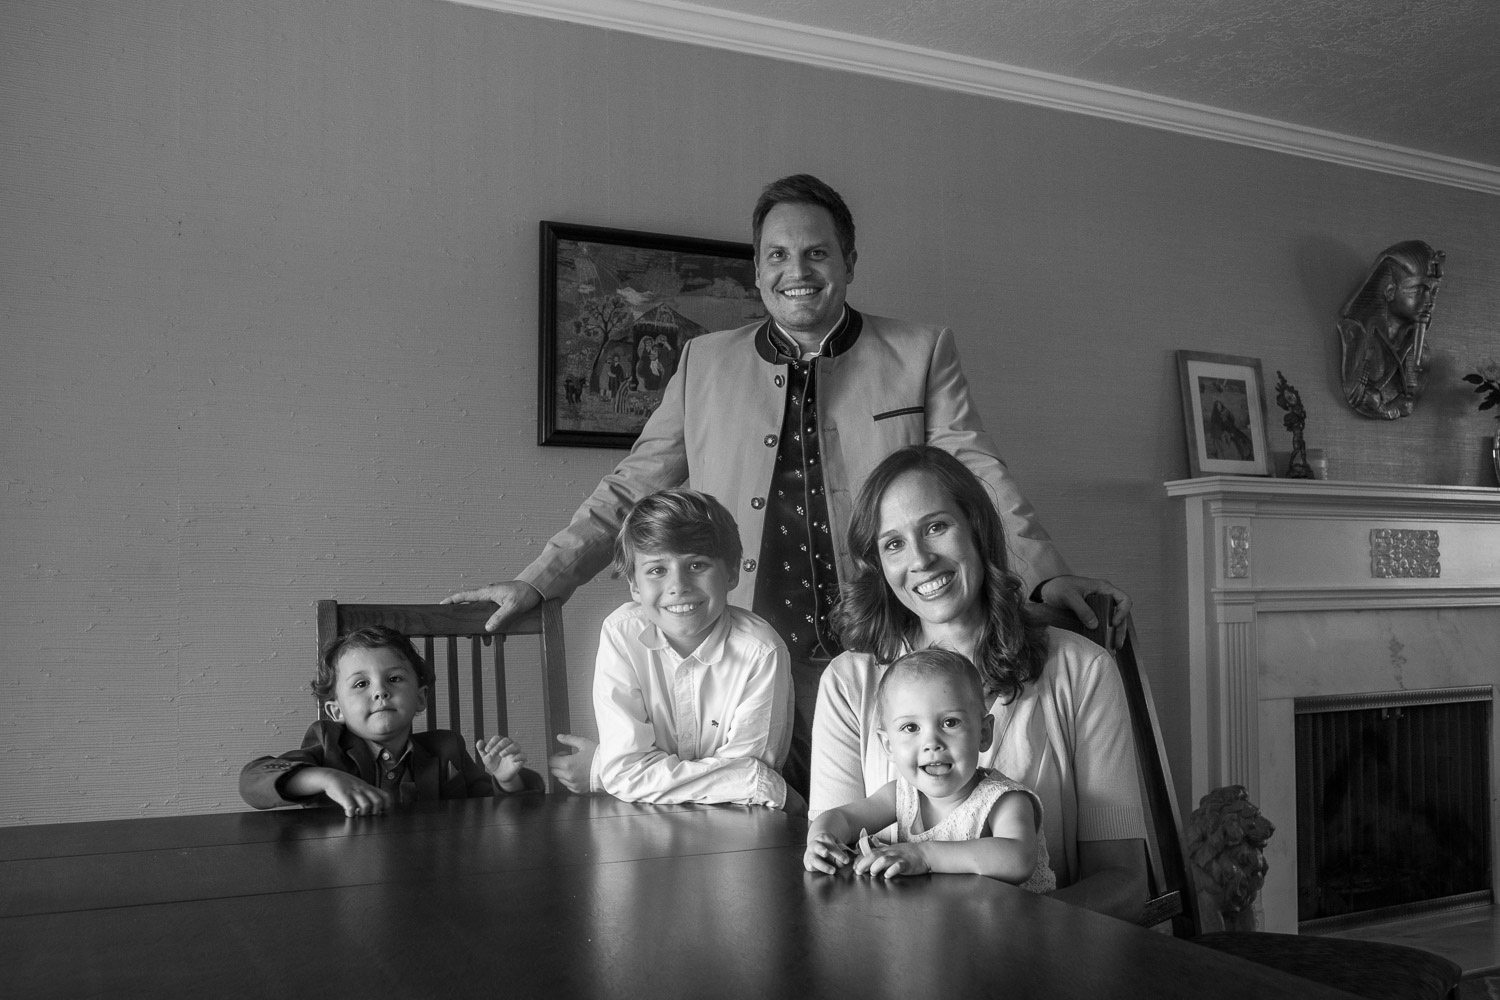 utah-family-portrait-photography-5527.jpg